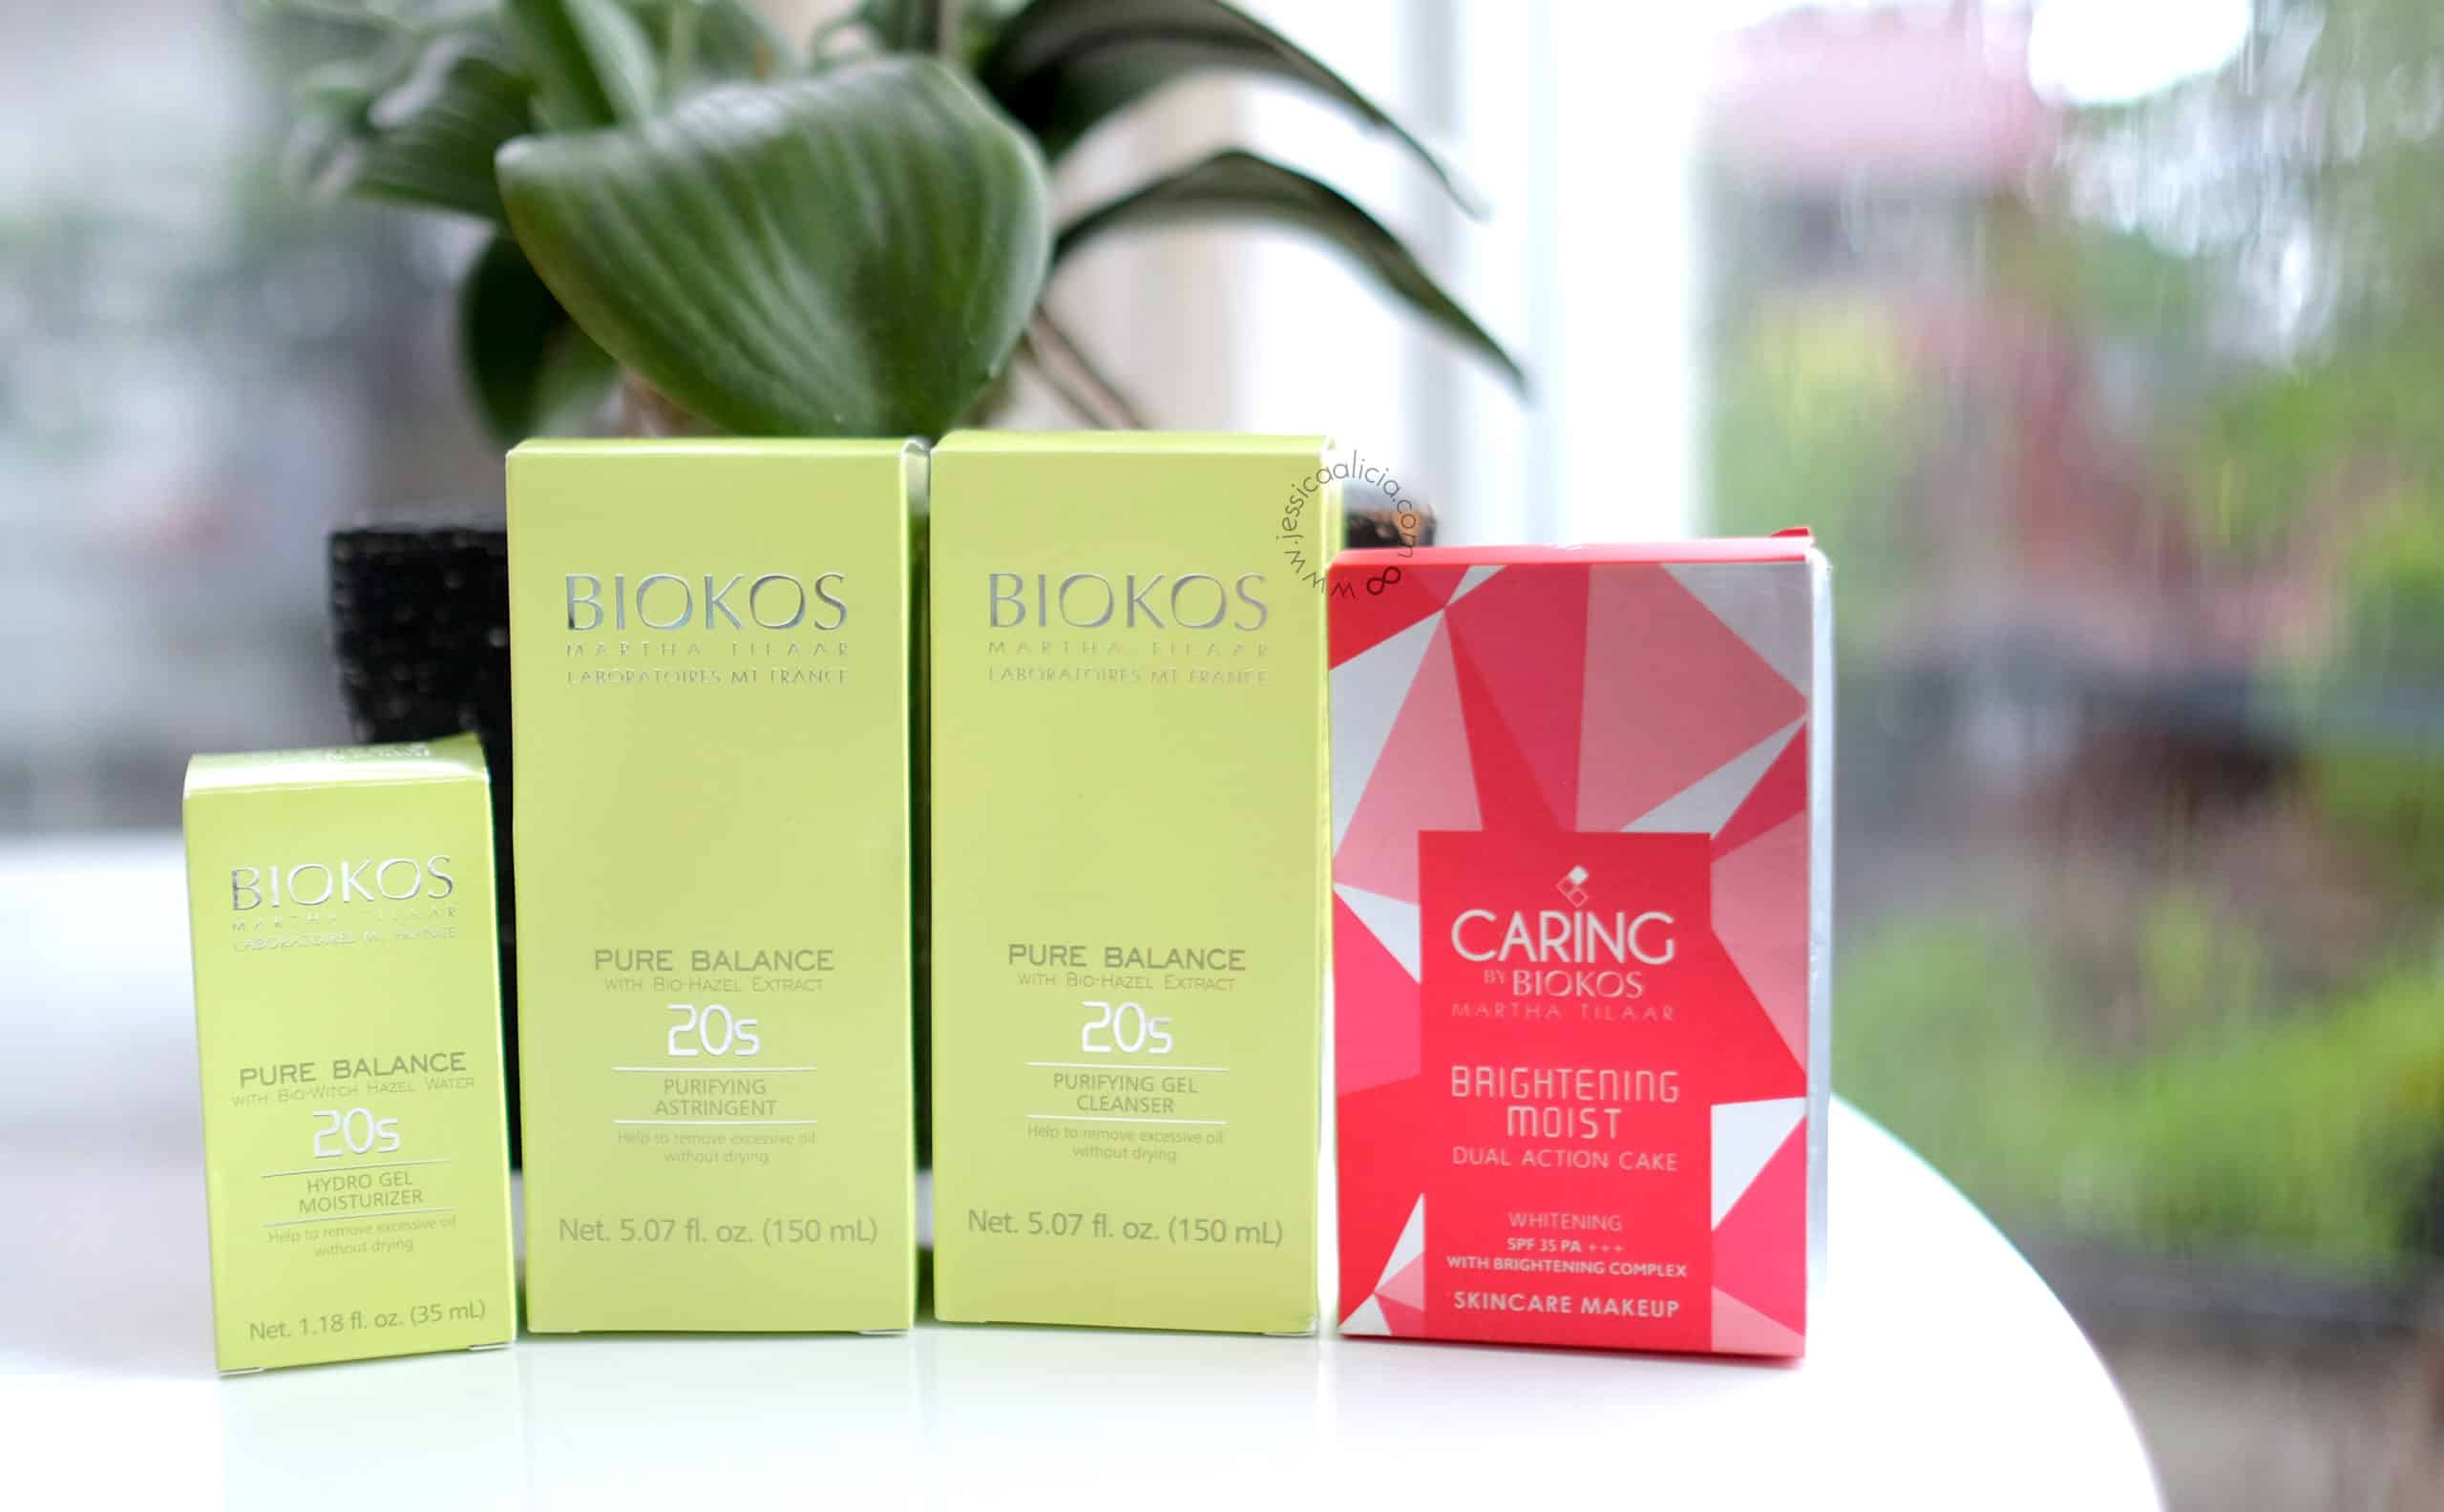 [Review] Biokos Pure Balance 20s Series & Caring Brightening Moist Dual Action Cake